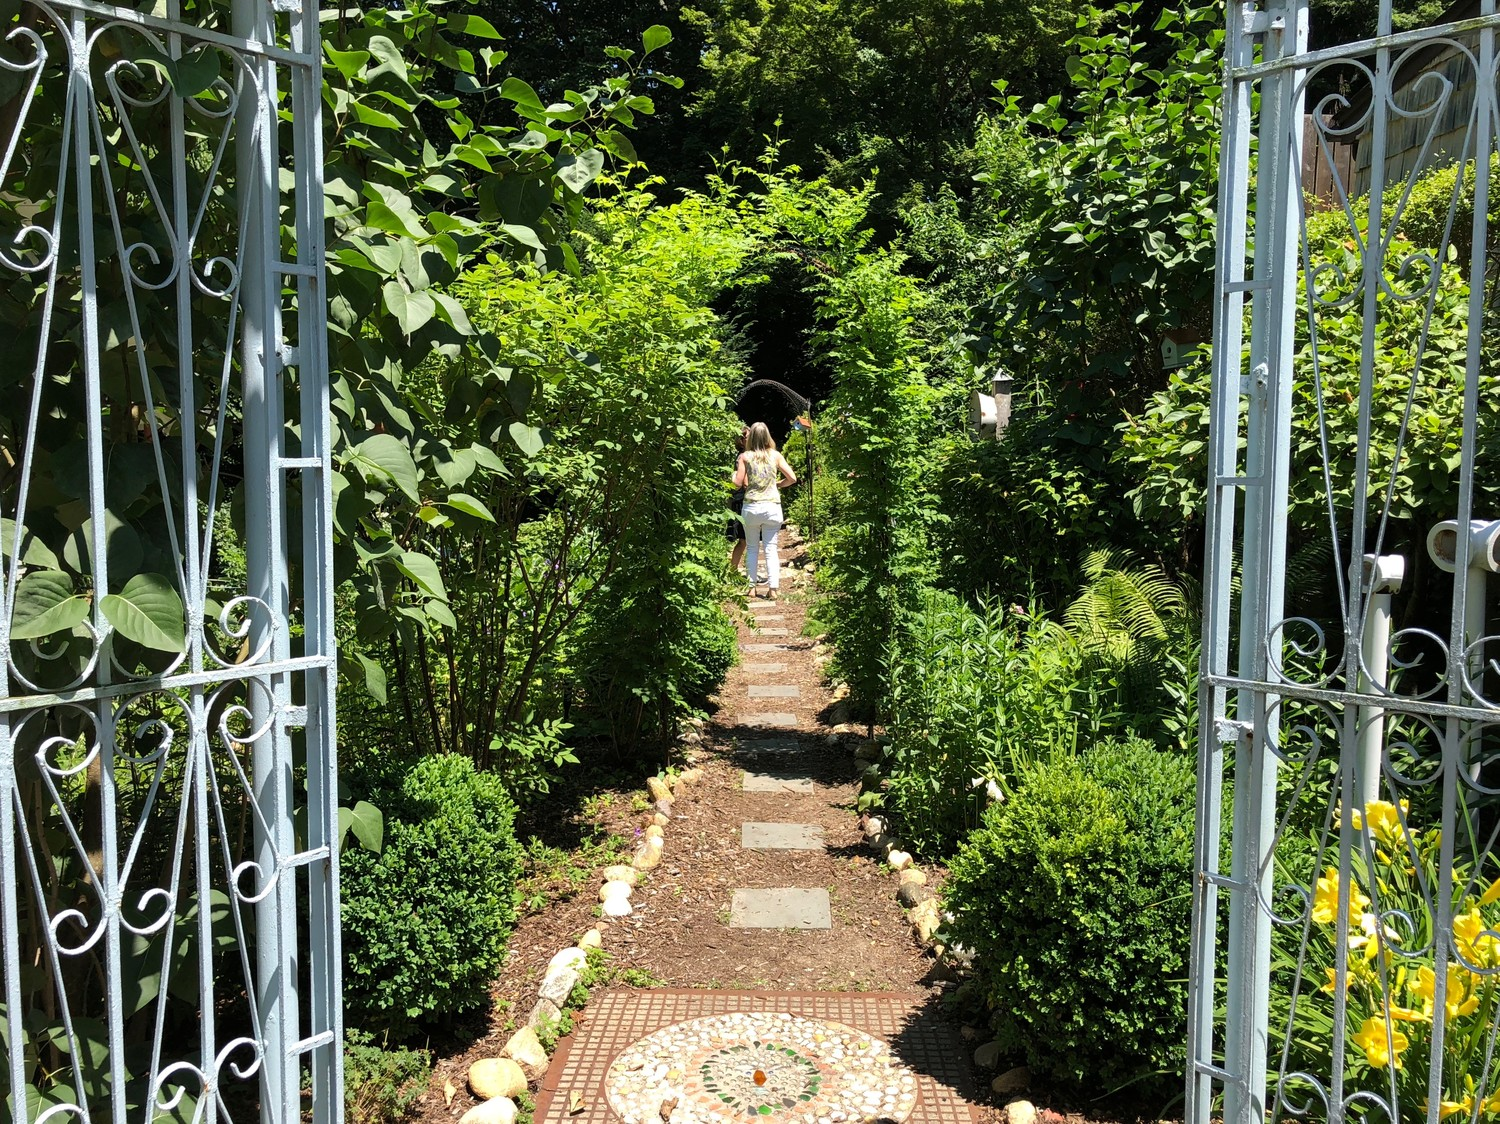 Visitors To Posey Heisigs French Inspired Gardens Were Enveloped In A Sea Of Green As